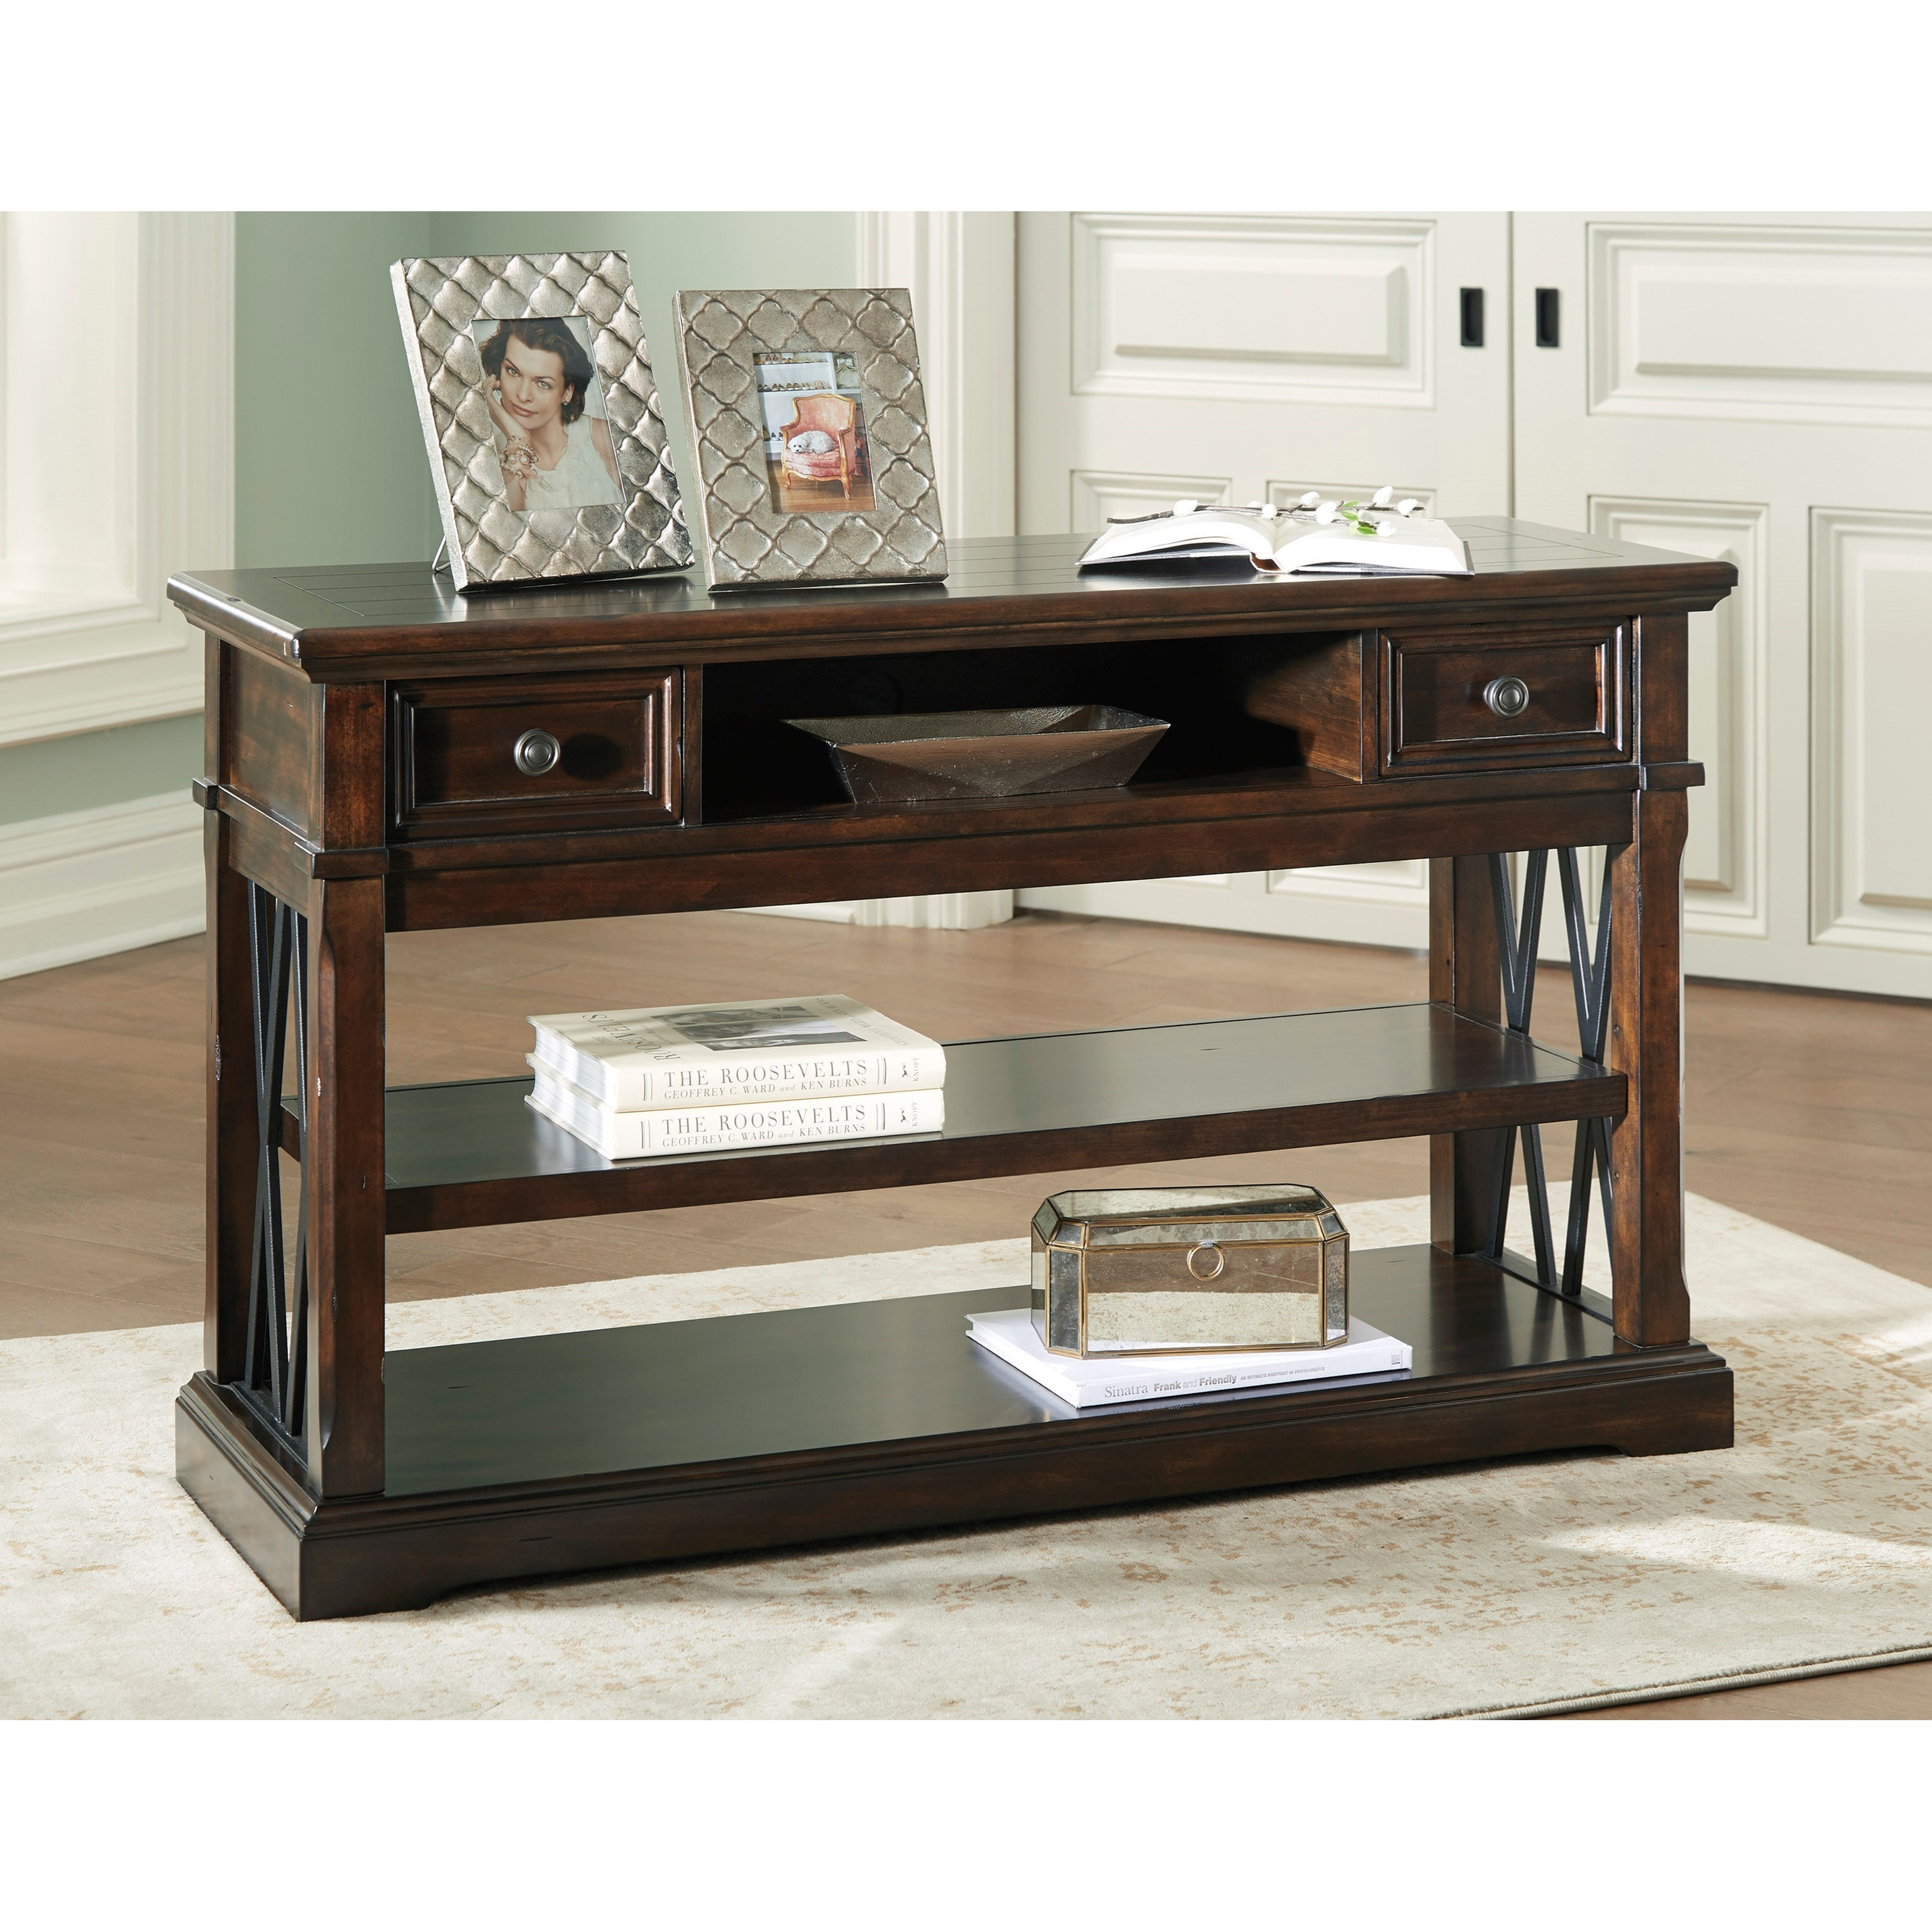 Signature Design By Ashley Roddinton Sofa Table With Metal X Panels Miskelly Furniture Sofa